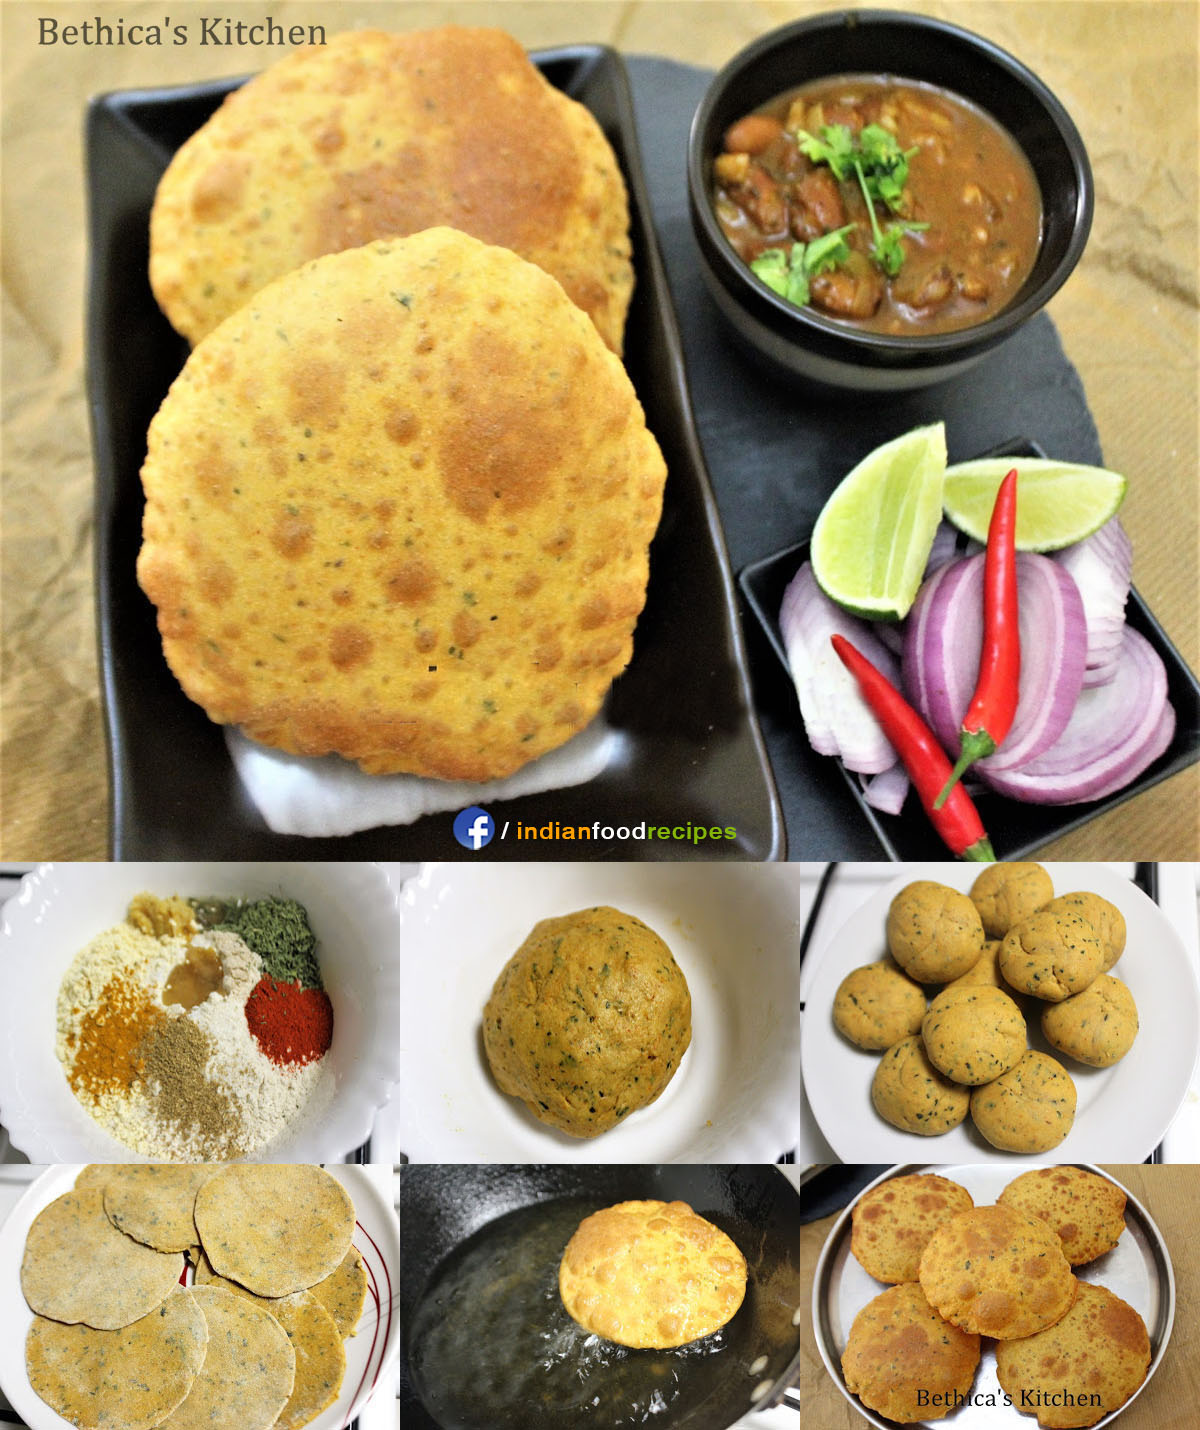 Pudina Masala Poori (Spicy-Minty Deep Fried Puffed Bread) recipe step by step pictures